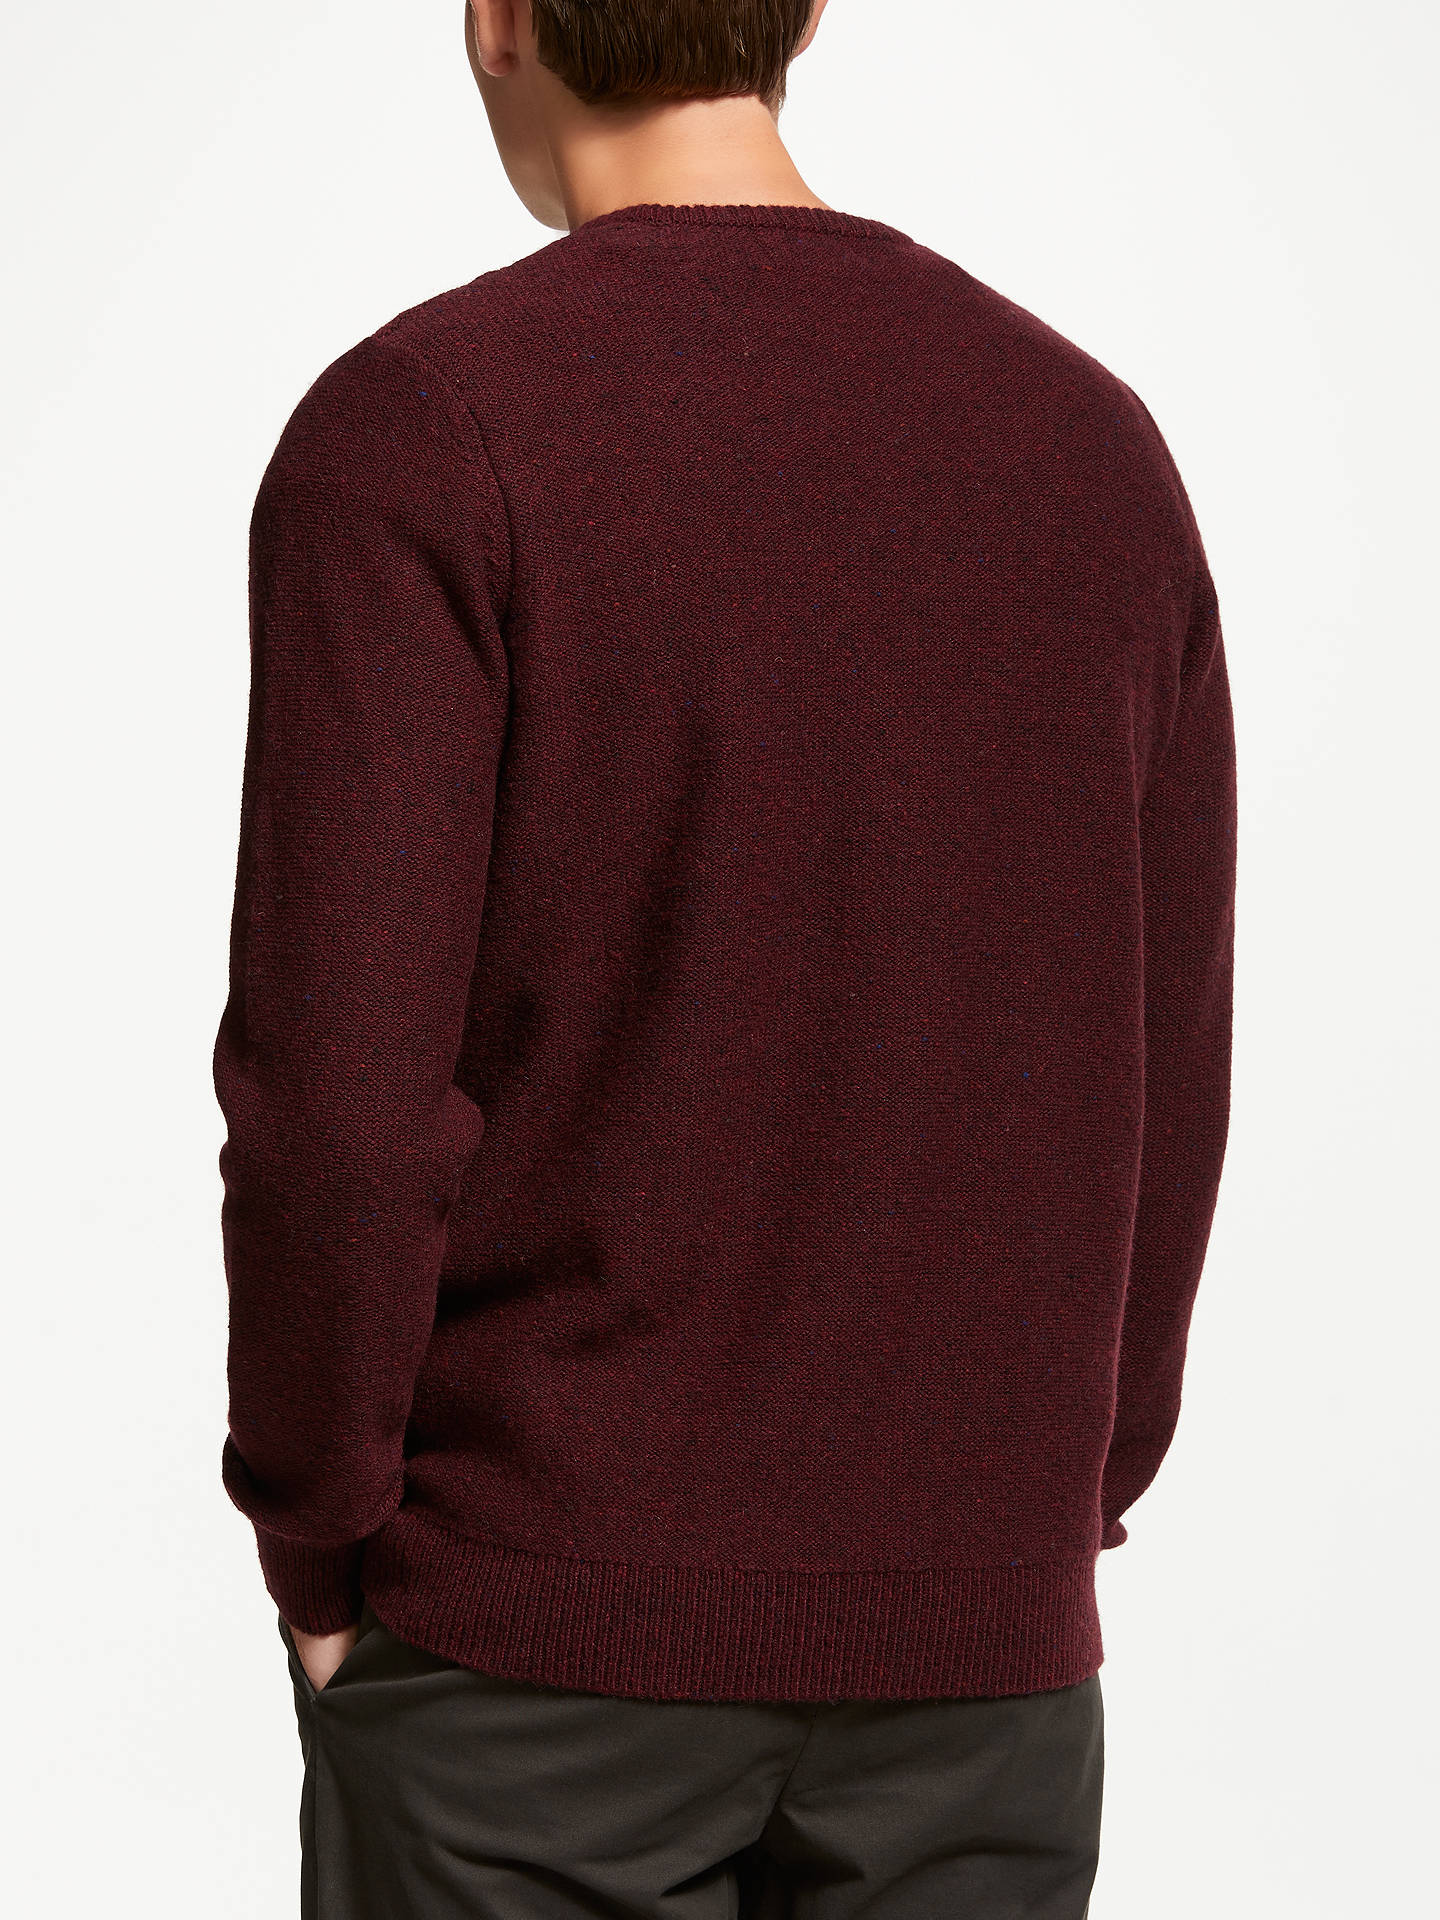 Buy John Lewis & Partners Cable Crew Neck Jumper, Red, L Online at johnlewis.com